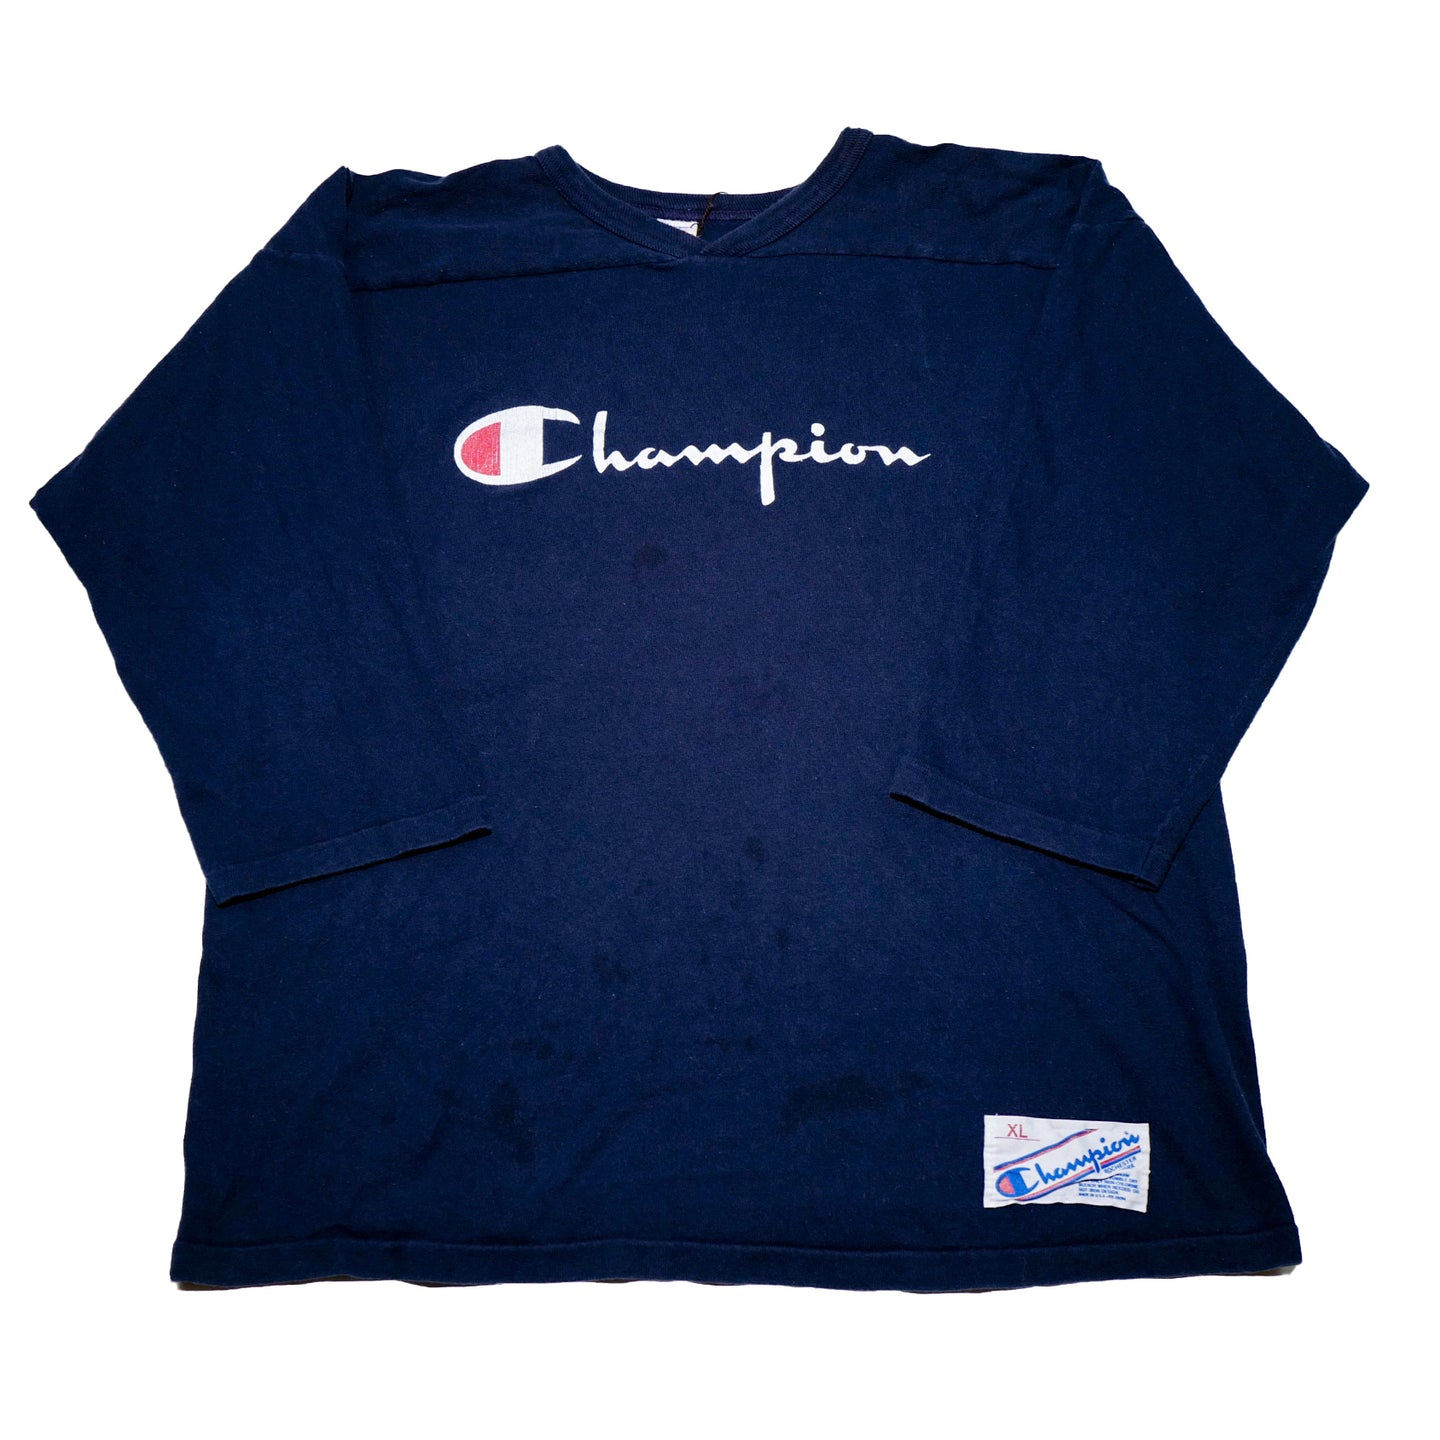 90's Champion 3/4 Sleeves Graphic Tee